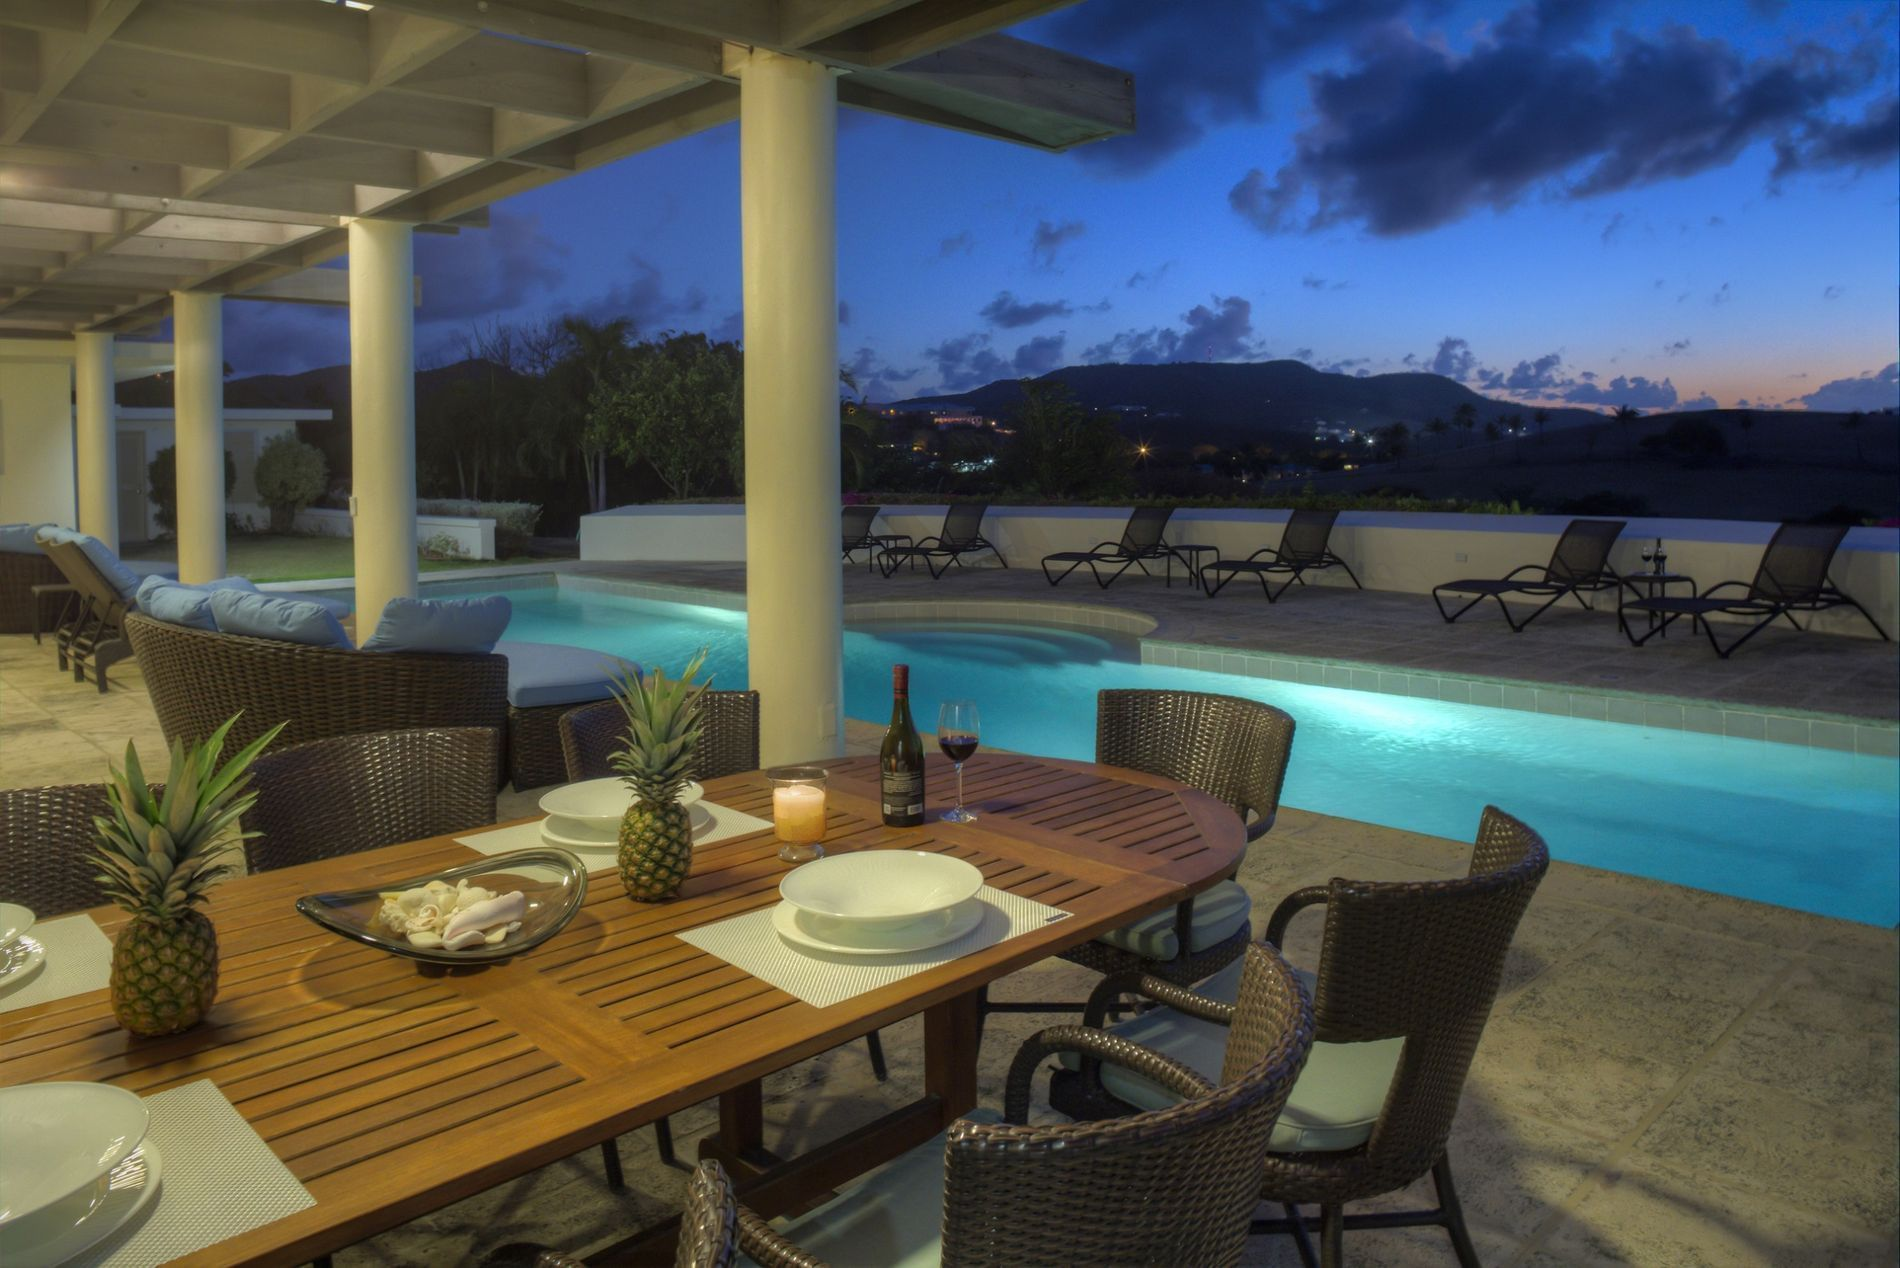 Dining Table on Deck By Outdoor Pool at Dusk